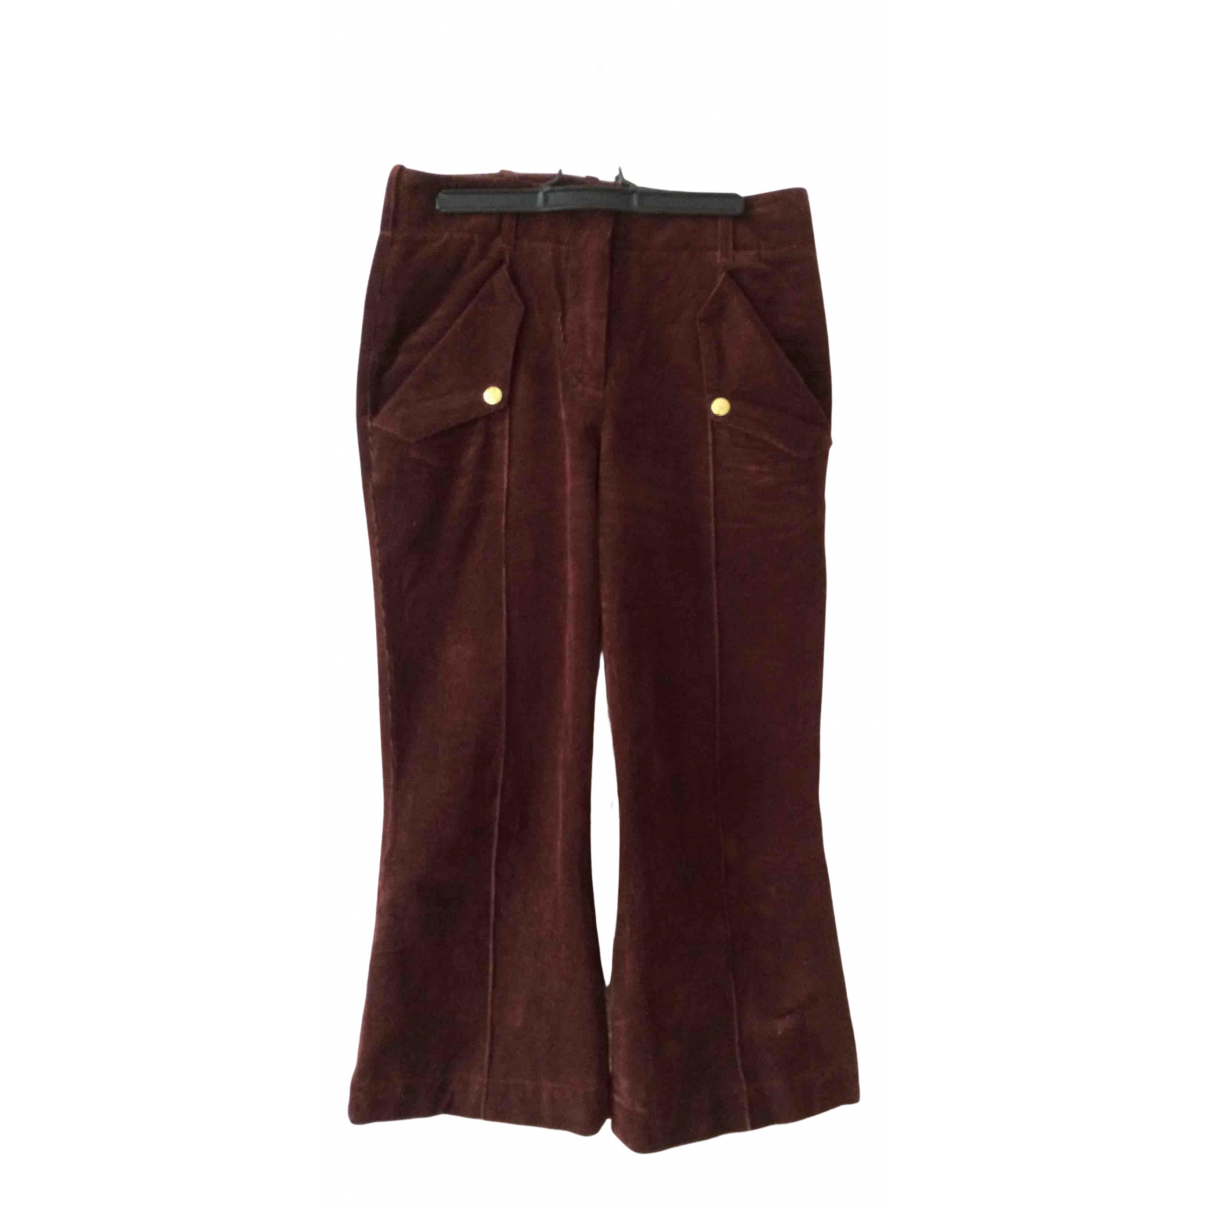 Acne Studios N Brown Cotton Trousers for Women 34 FR